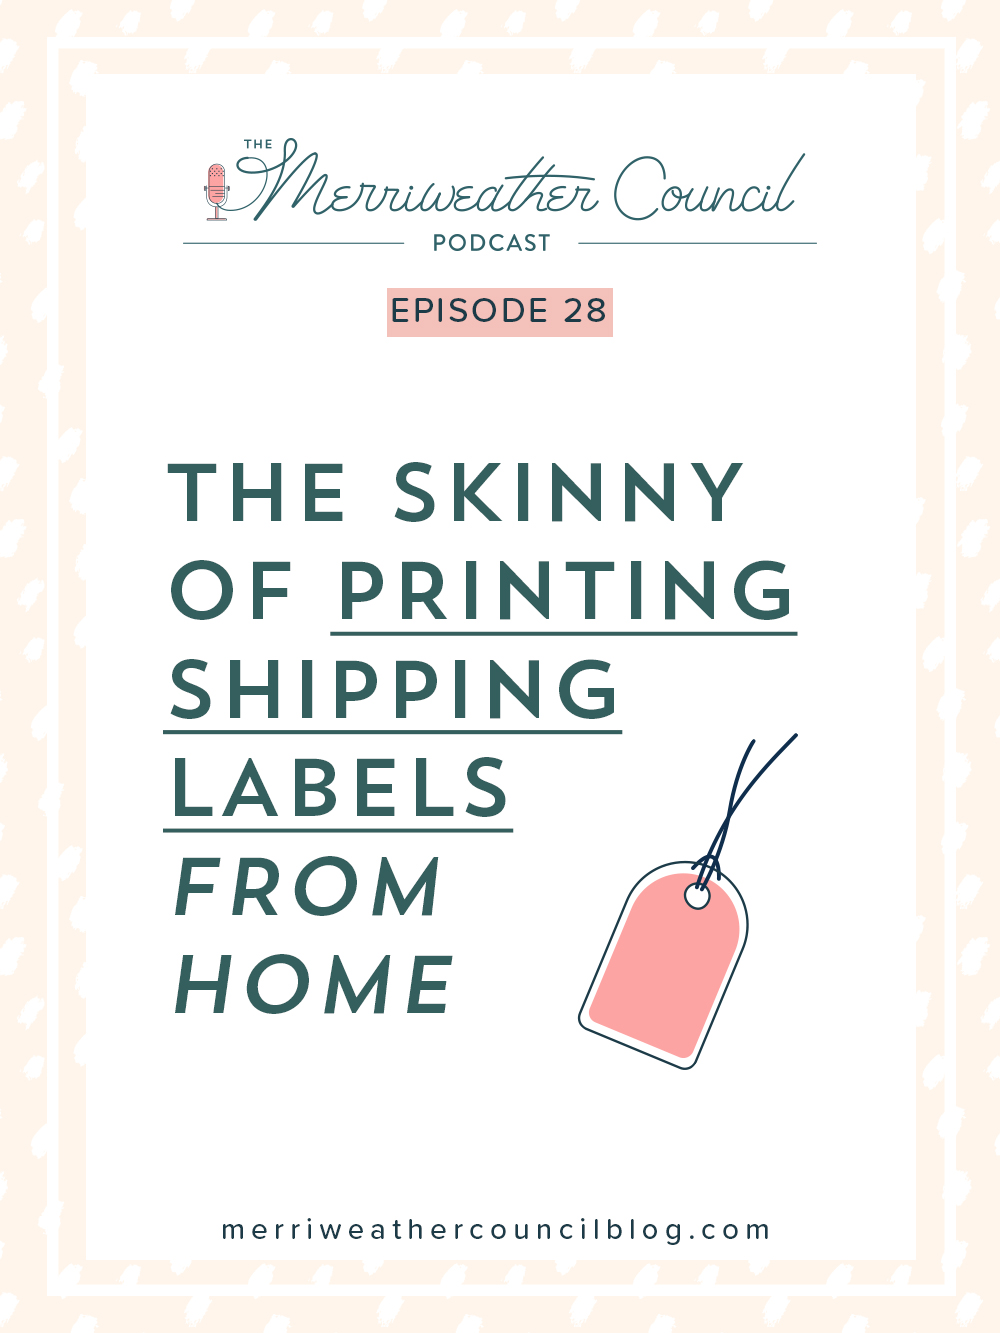 Episode 28: The Skinny on Printing Shipping Labels From Home | The Merriweather Council Podcast